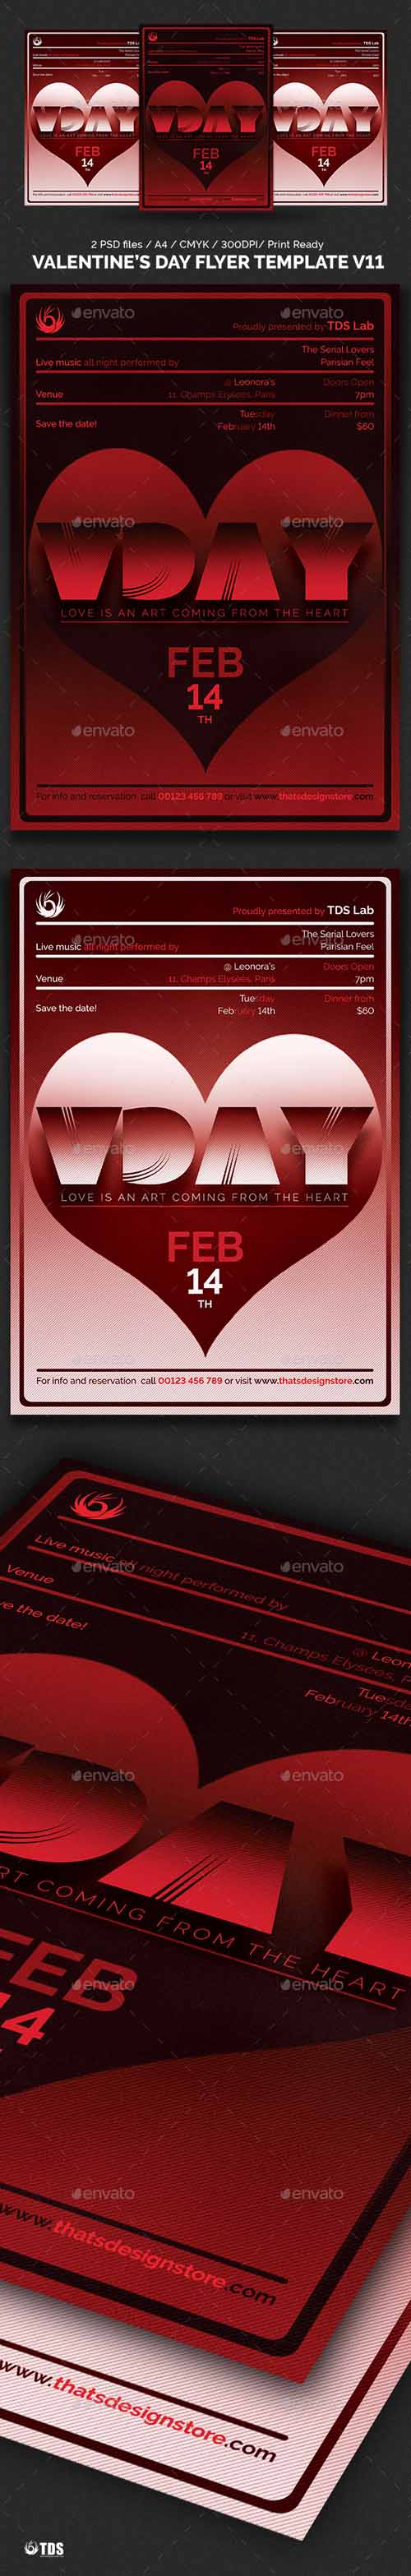 Valentines Day Flyer Template V11 19319516